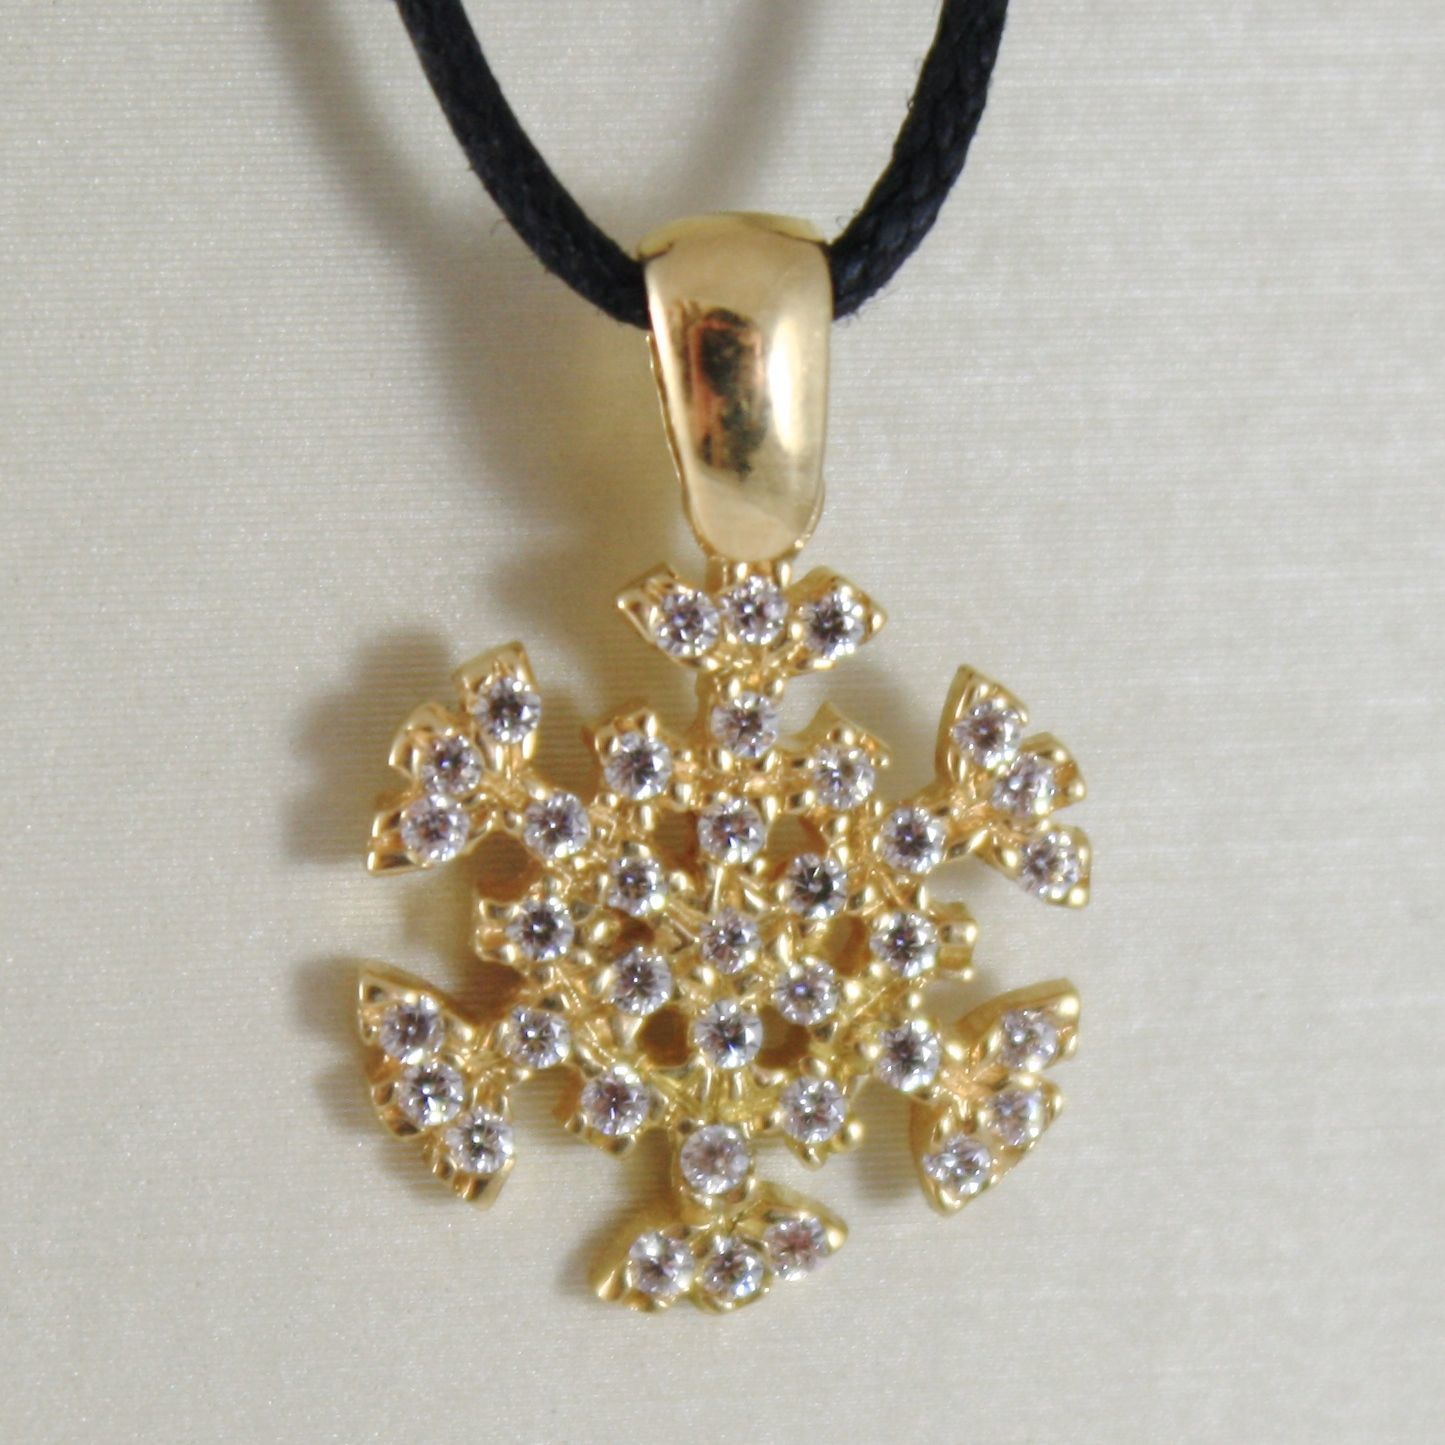 PENDENTIF EN OR JAUNE 750 18K, FLOCON DE NEIGE, LONG 2 CM ZIRCONIA MADE IN ITALY